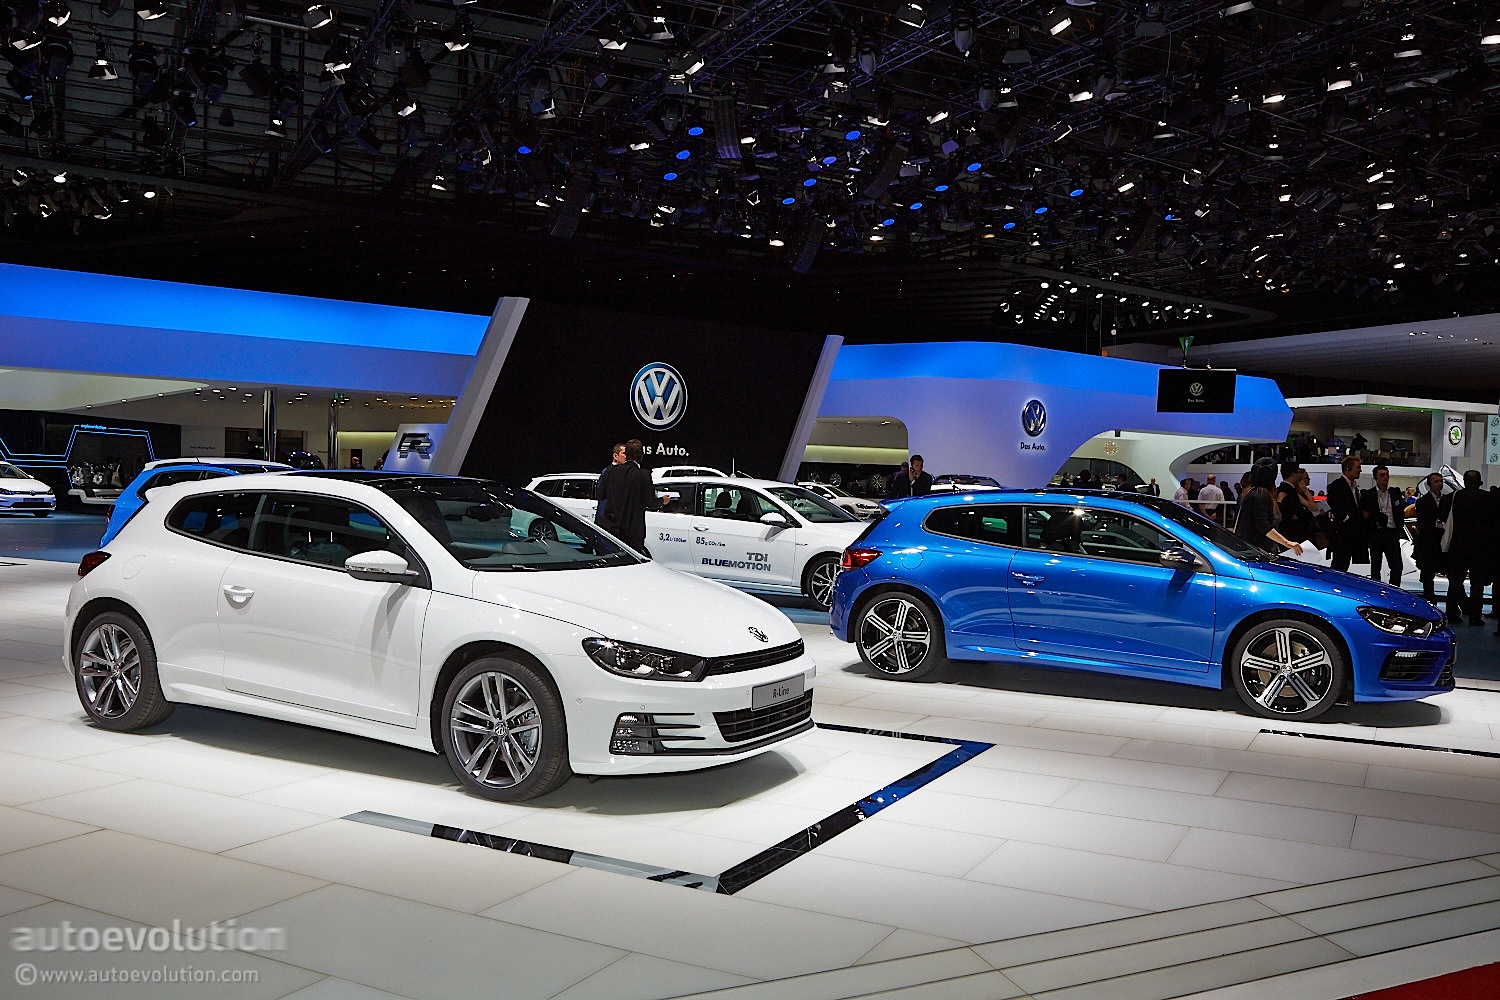 Vw Scirocco Facelift Launched In Britain Pricing And Details Announced on Volkswagen Turbo